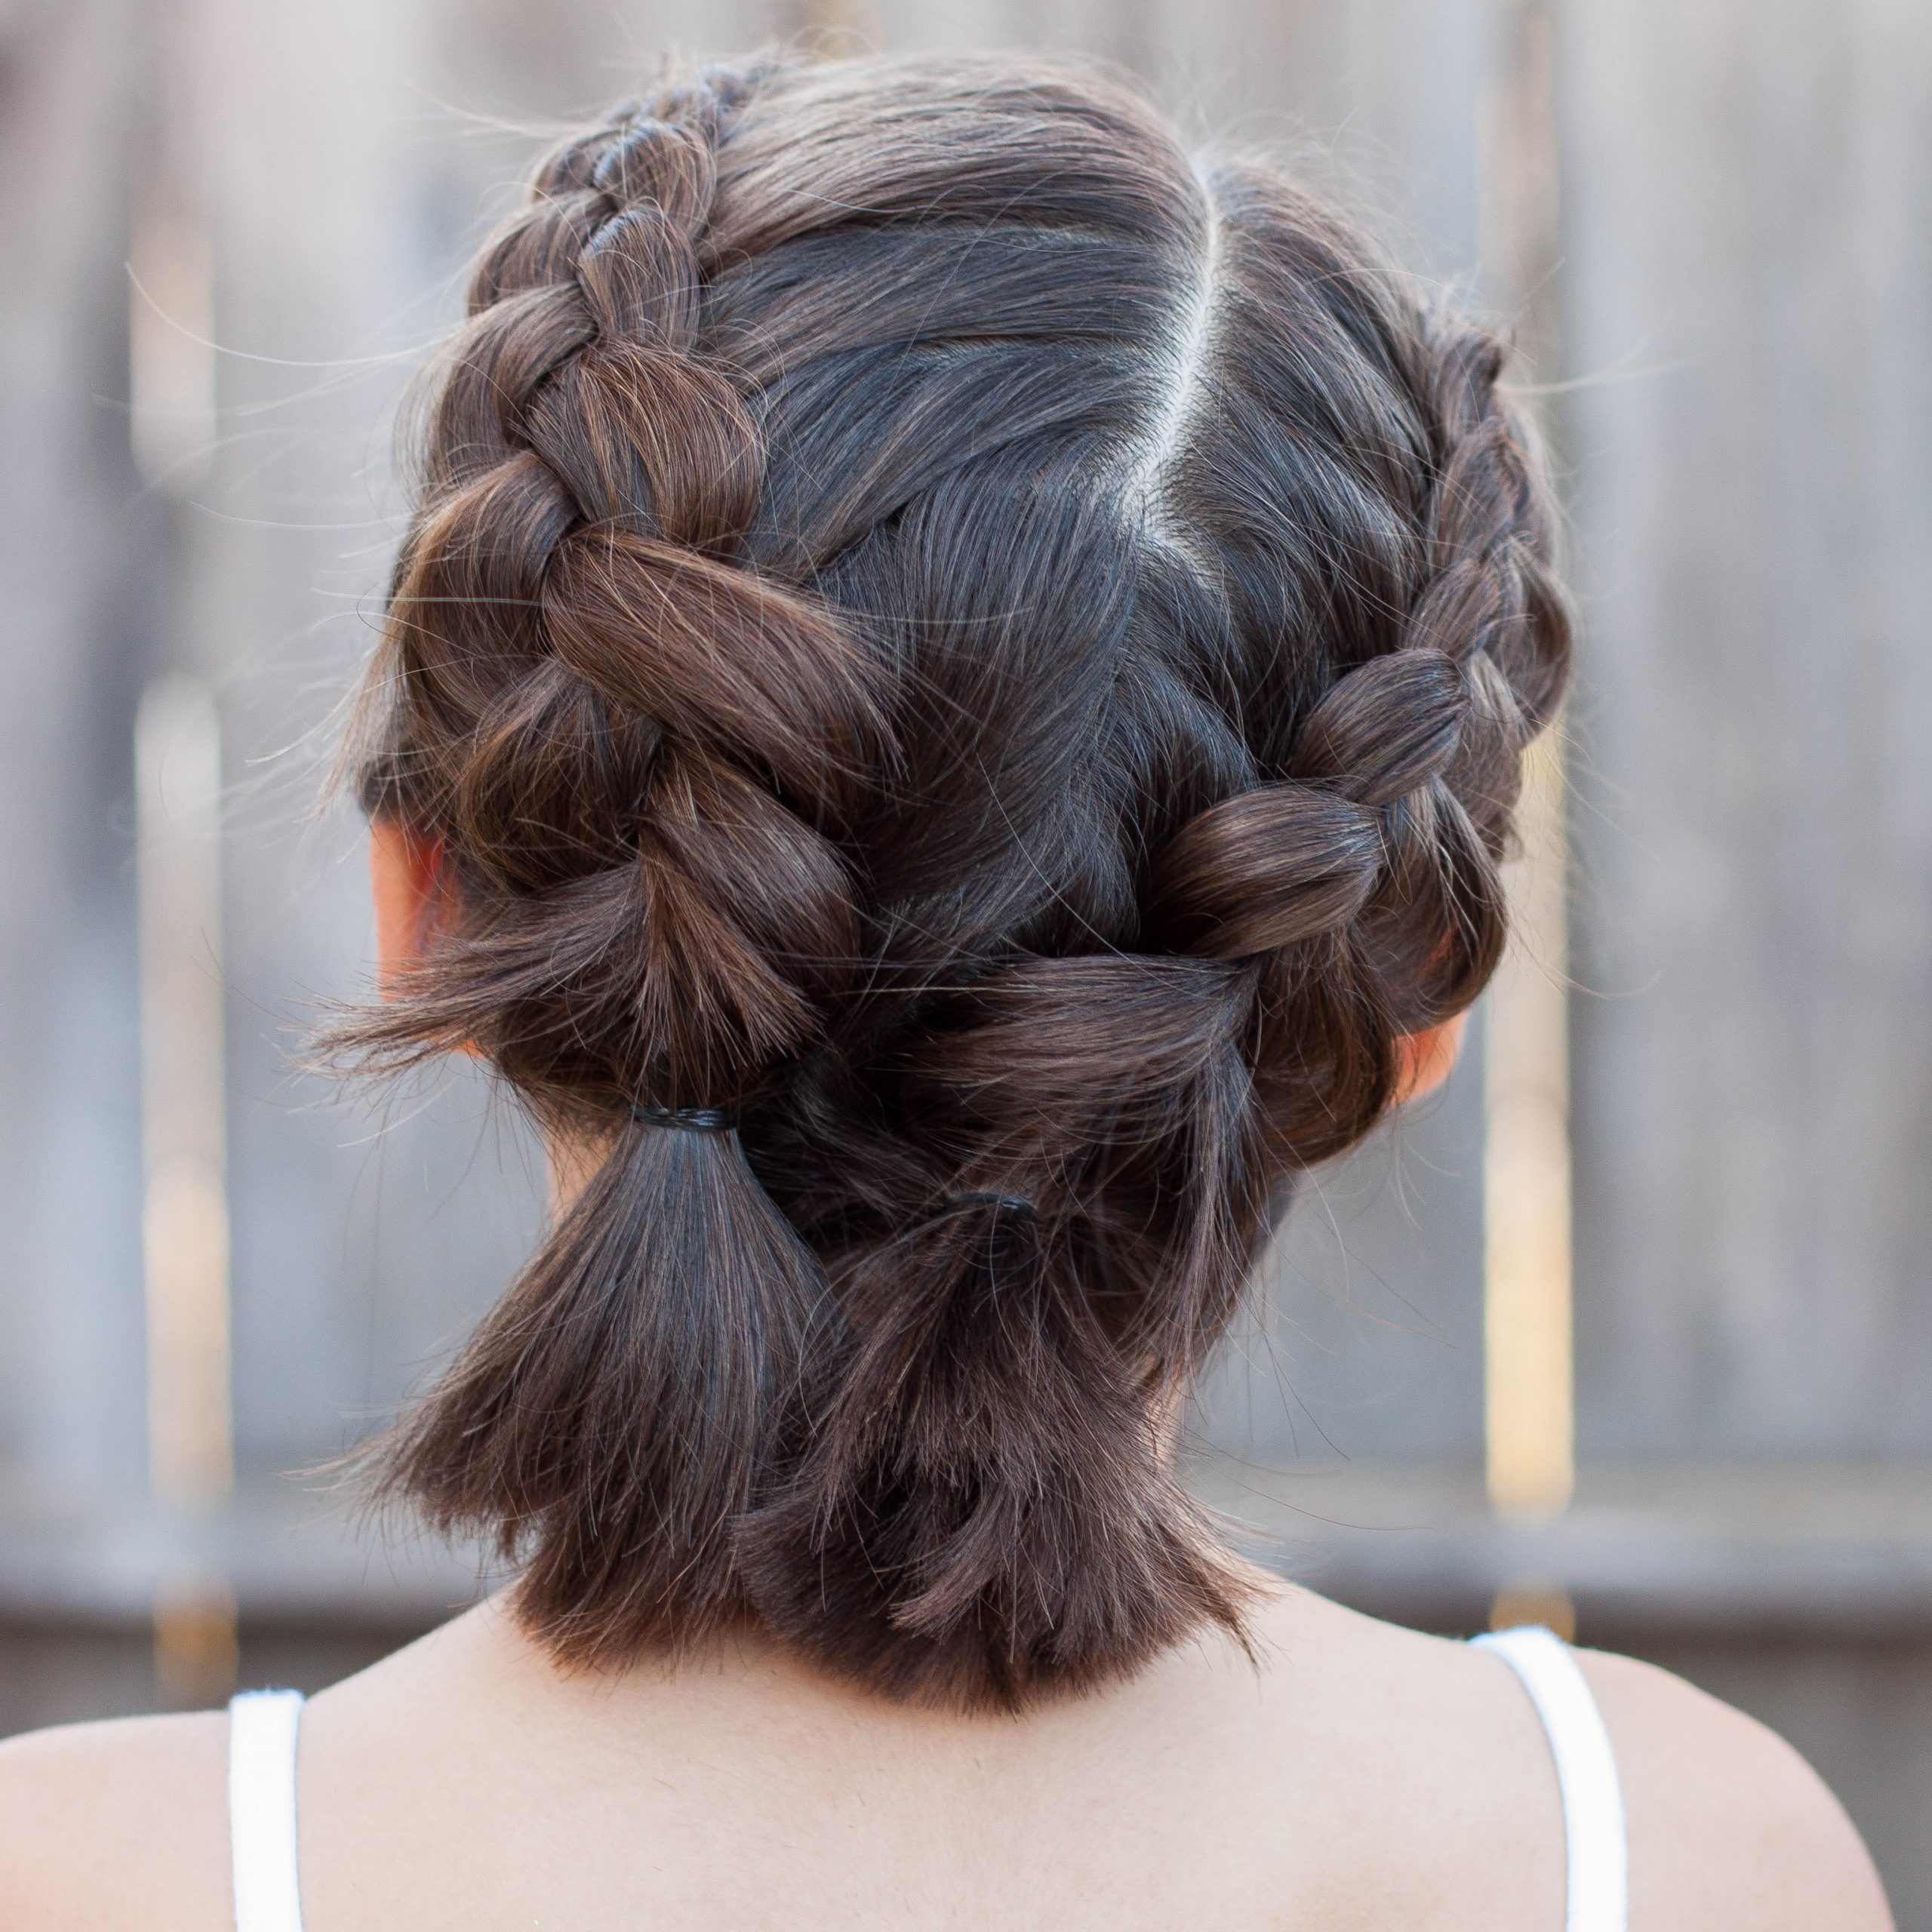 5 Braids For Short Hair – Cute Girls Hairstyles Throughout Popular Pigtails Hairstyles (View 15 of 20)